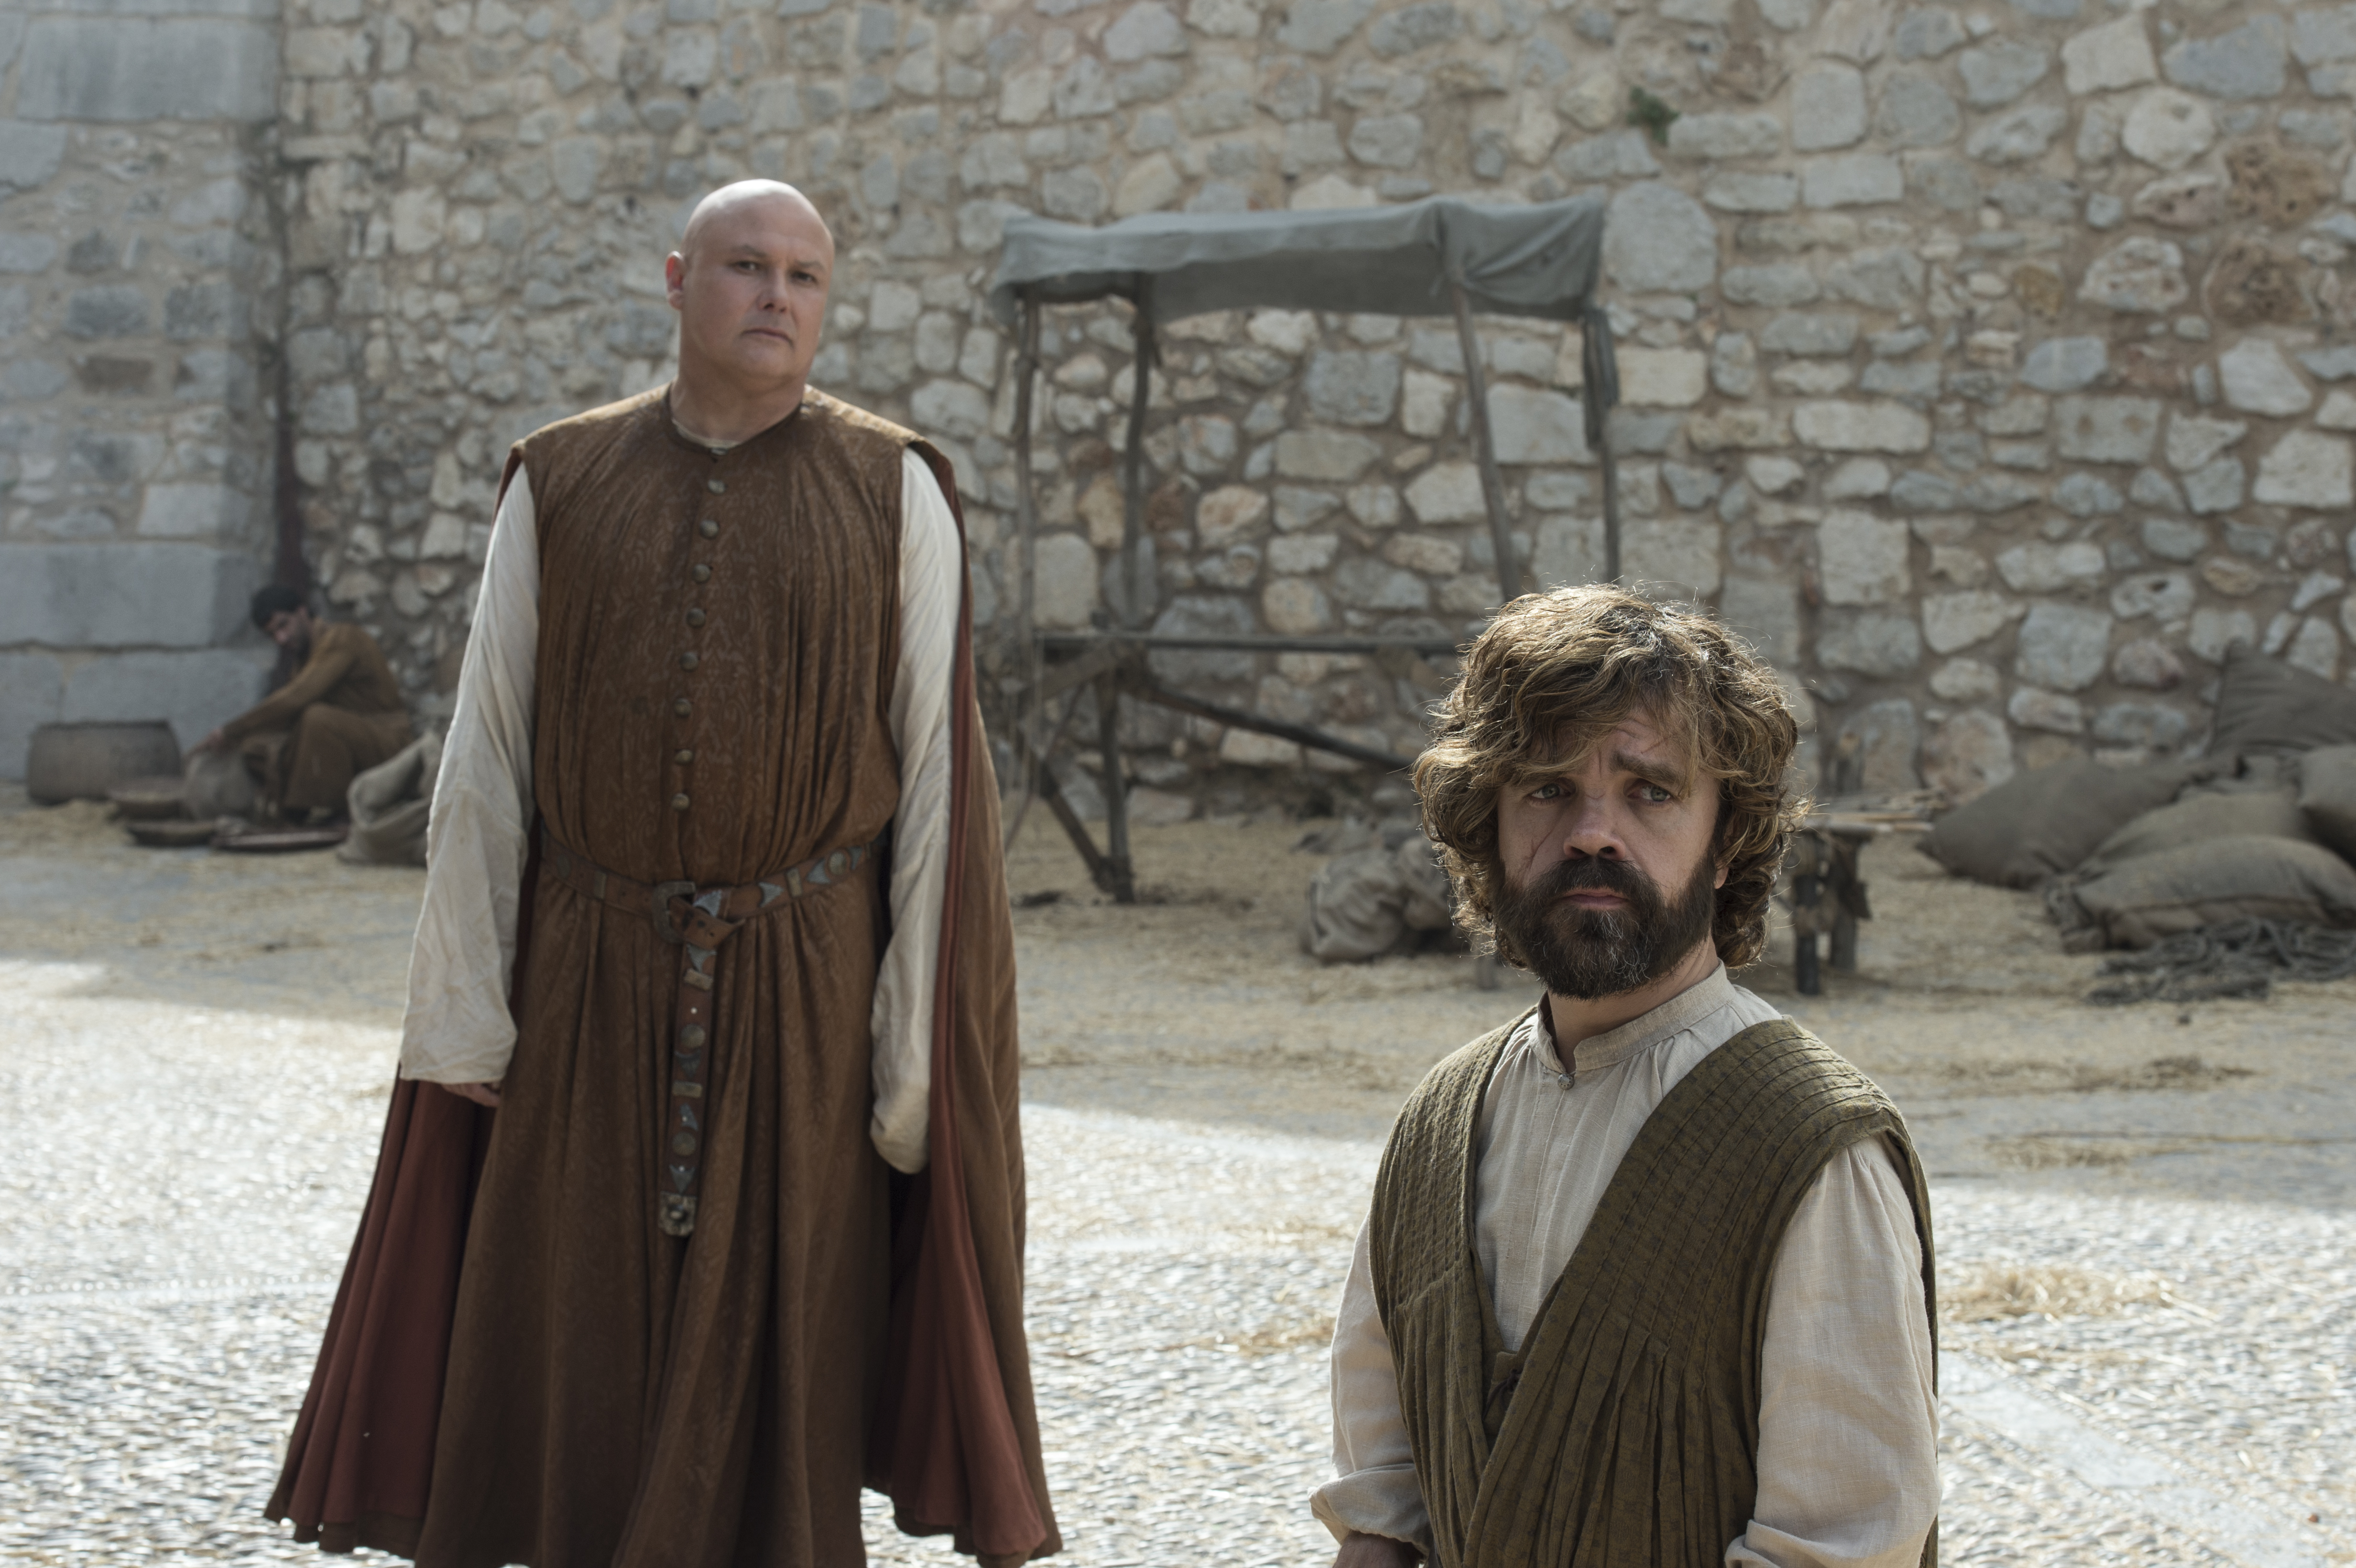 Conleth Hill as Varys and Peter Dinklage as Tyrion Lannister. Photo by Macall B. Polay/HBO